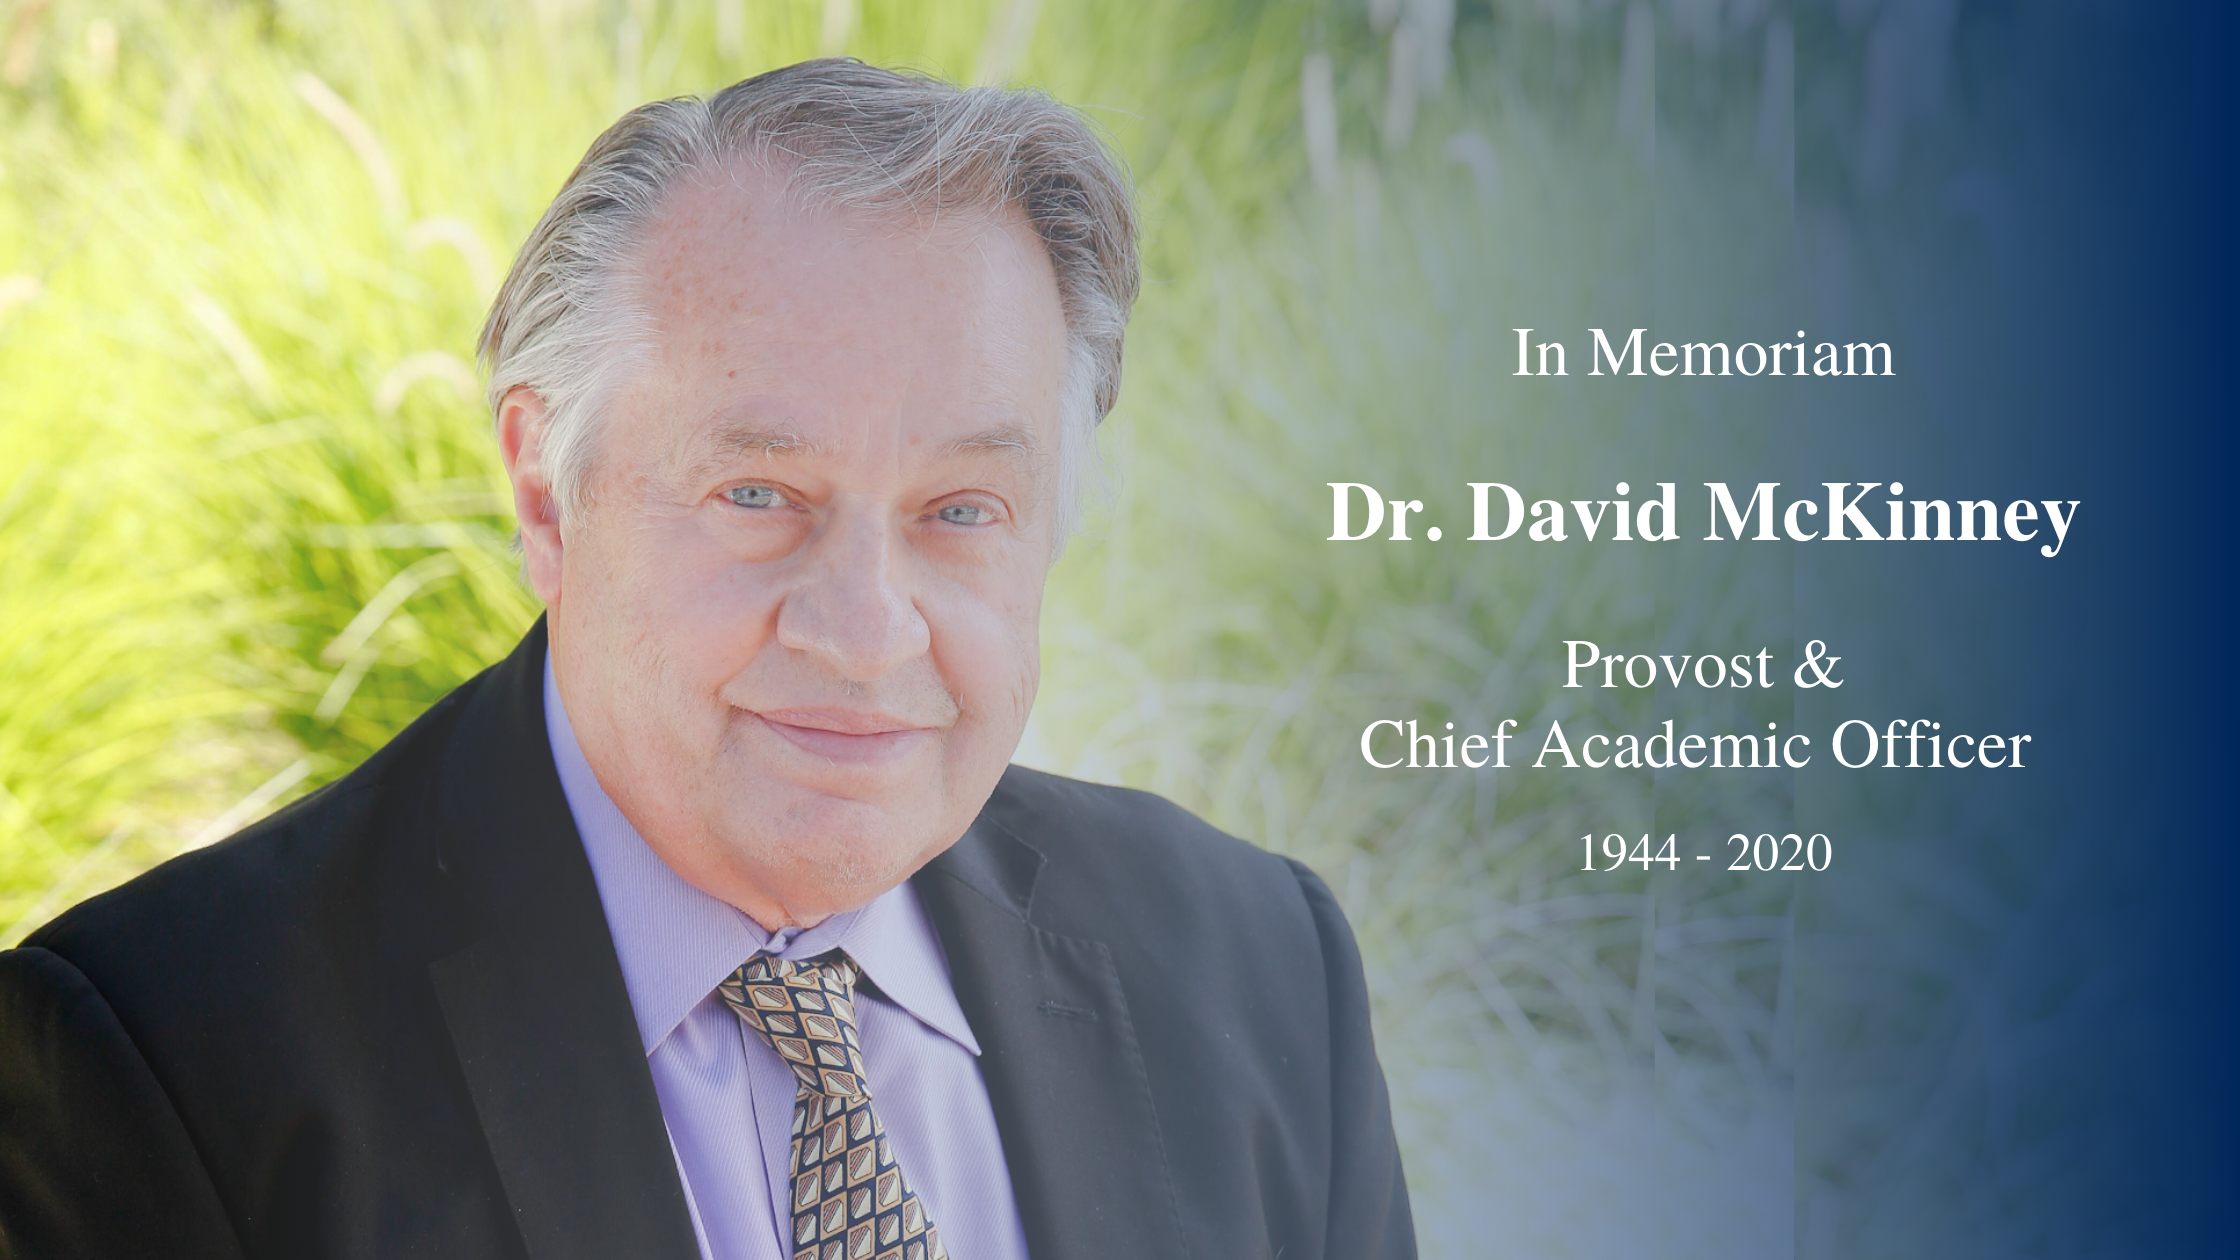 Westcliff University mourns the sudden passing of Provost and Chief Academic Officer, Dr. David McKinney